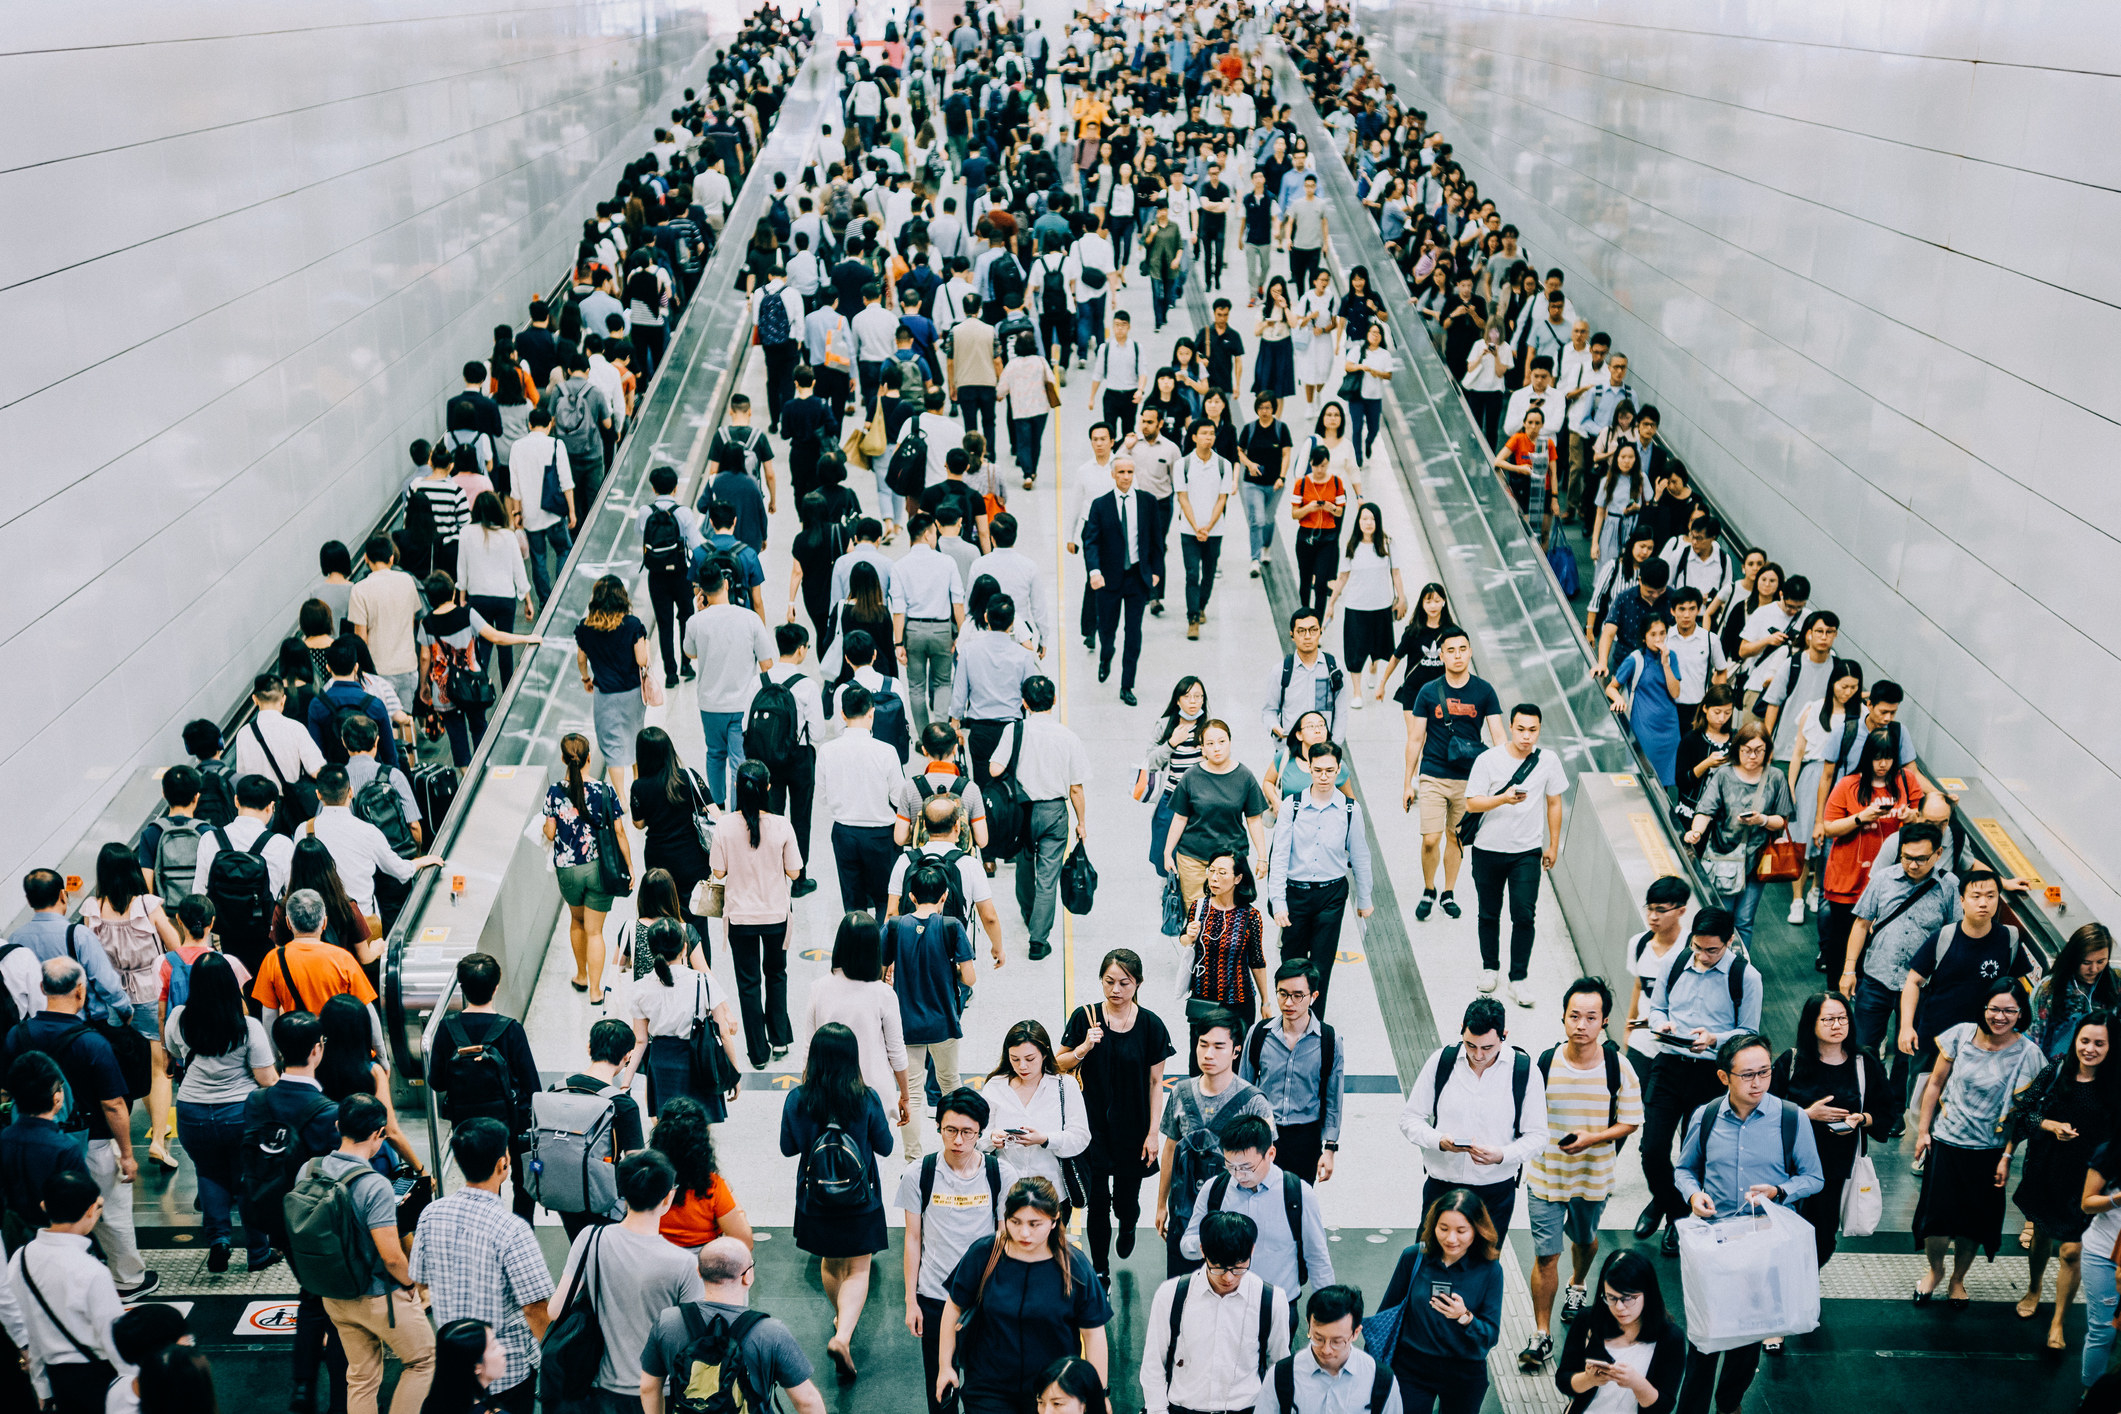 A crowded subway platform in China.